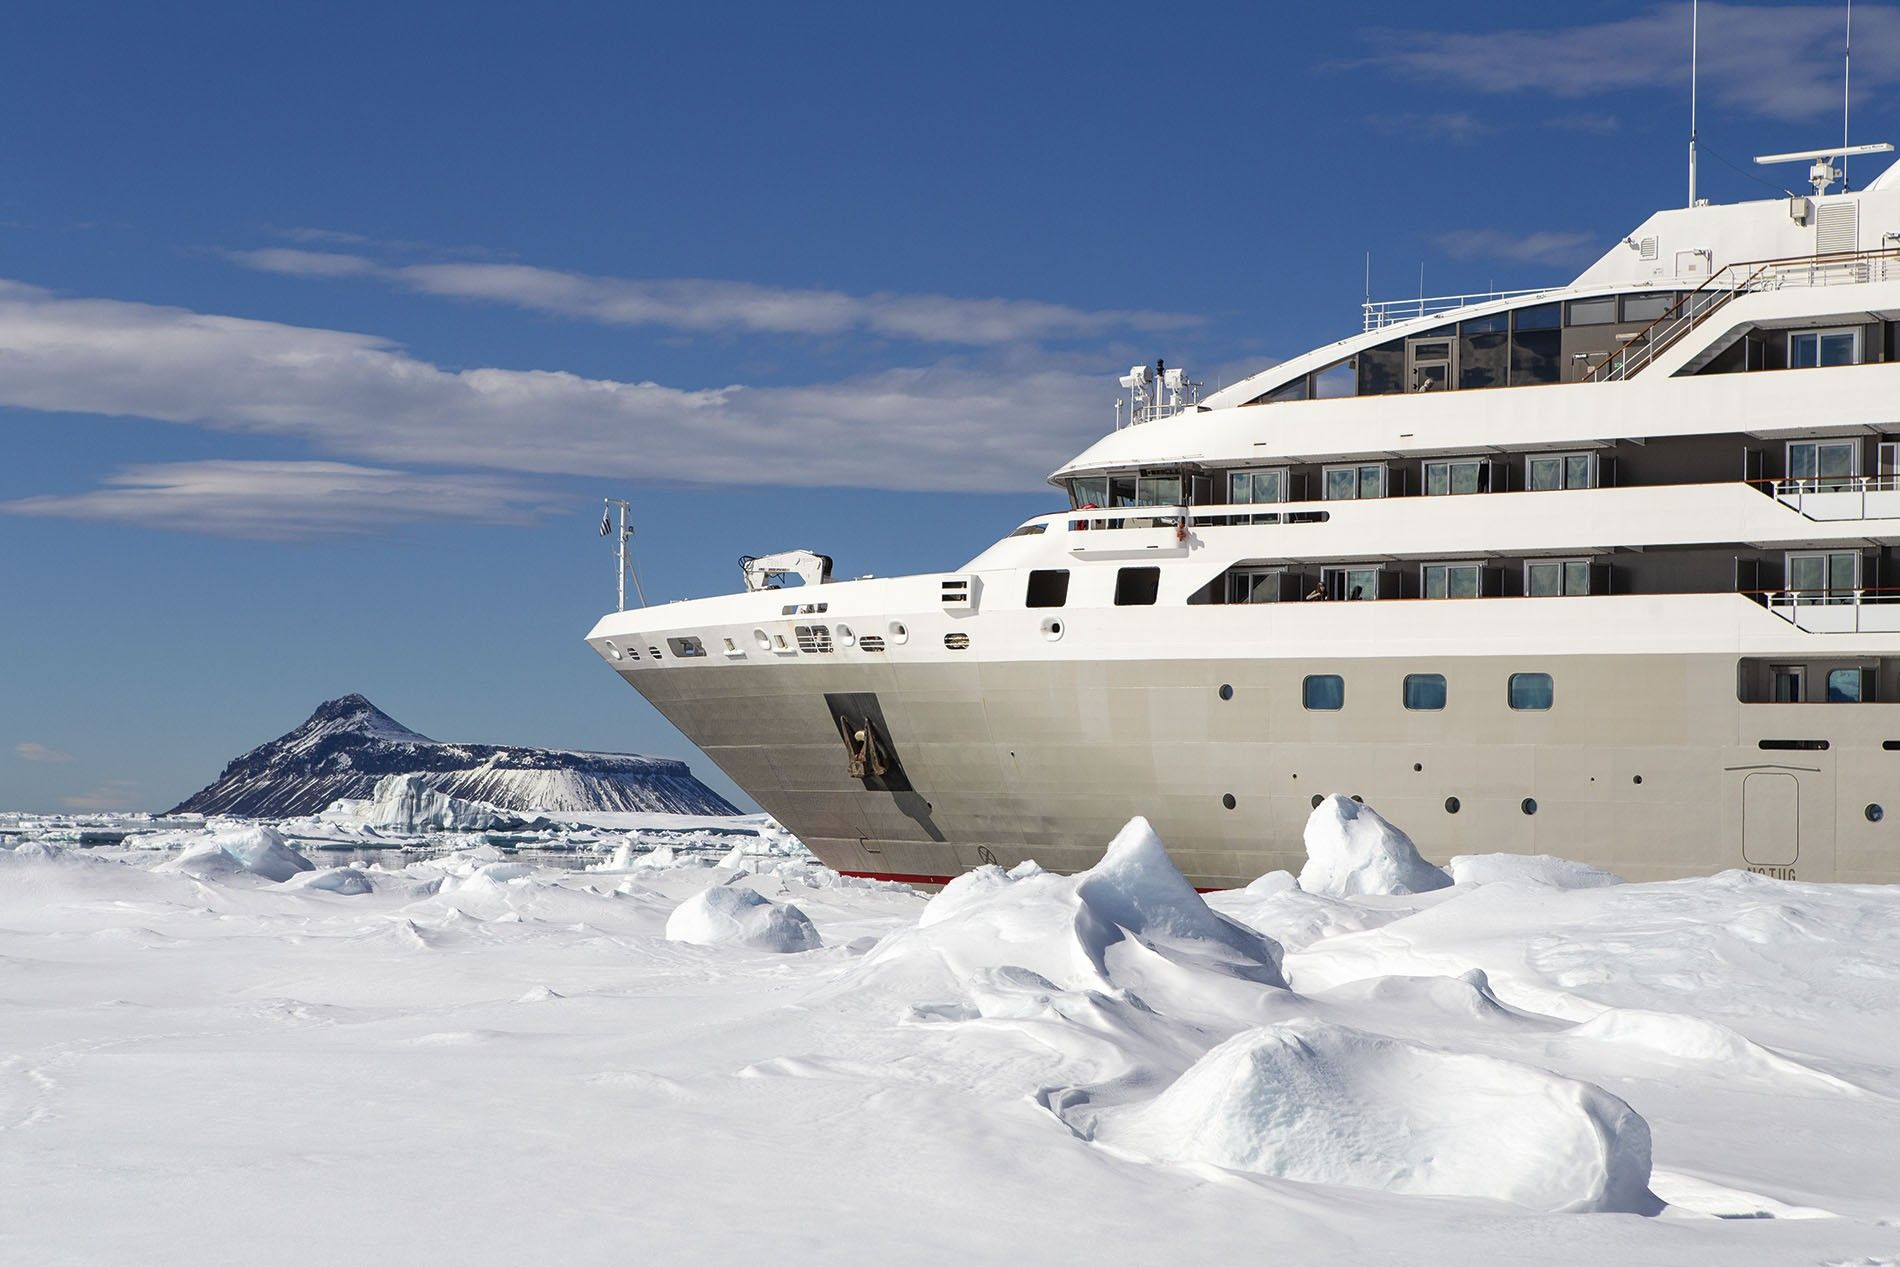 Le Soléal wedged into the ice to allow passengers to disembark.